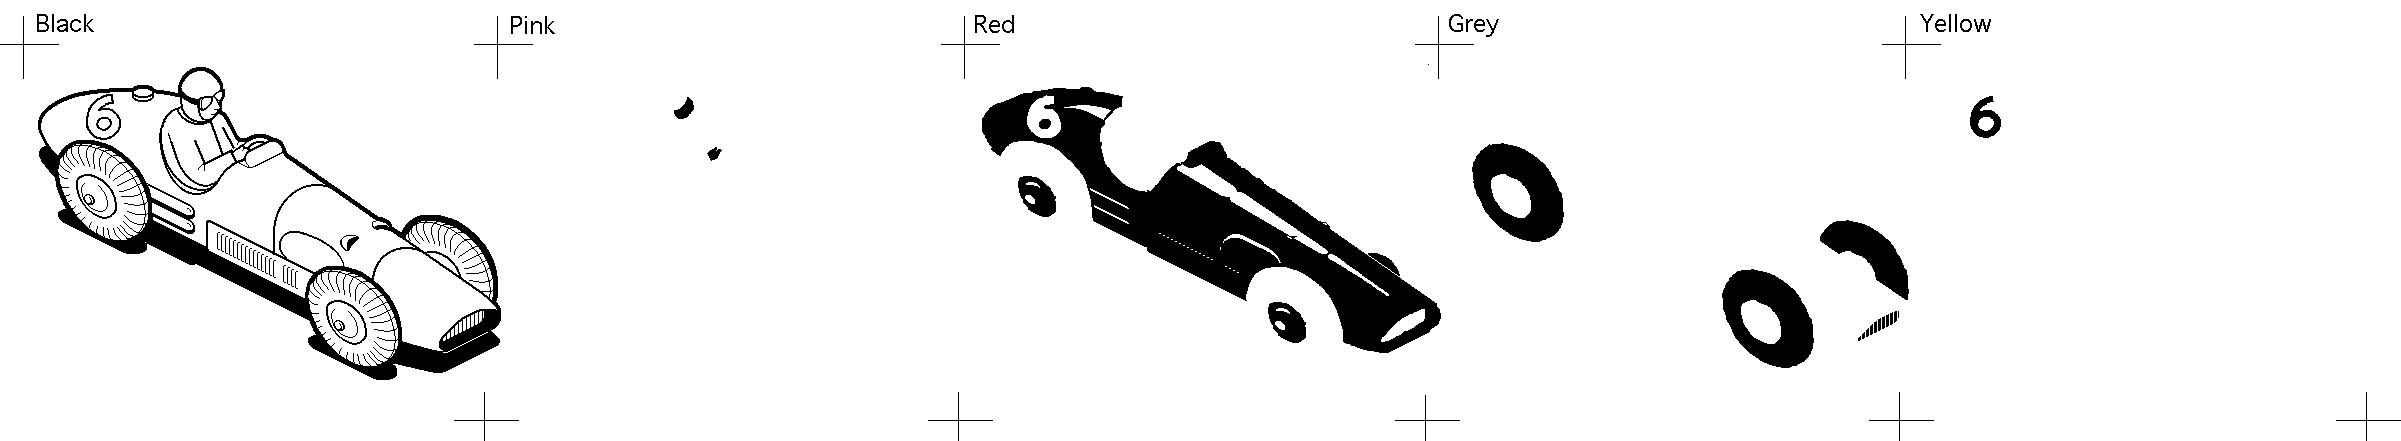 Ferrari Macuser bitmap illustration Separations